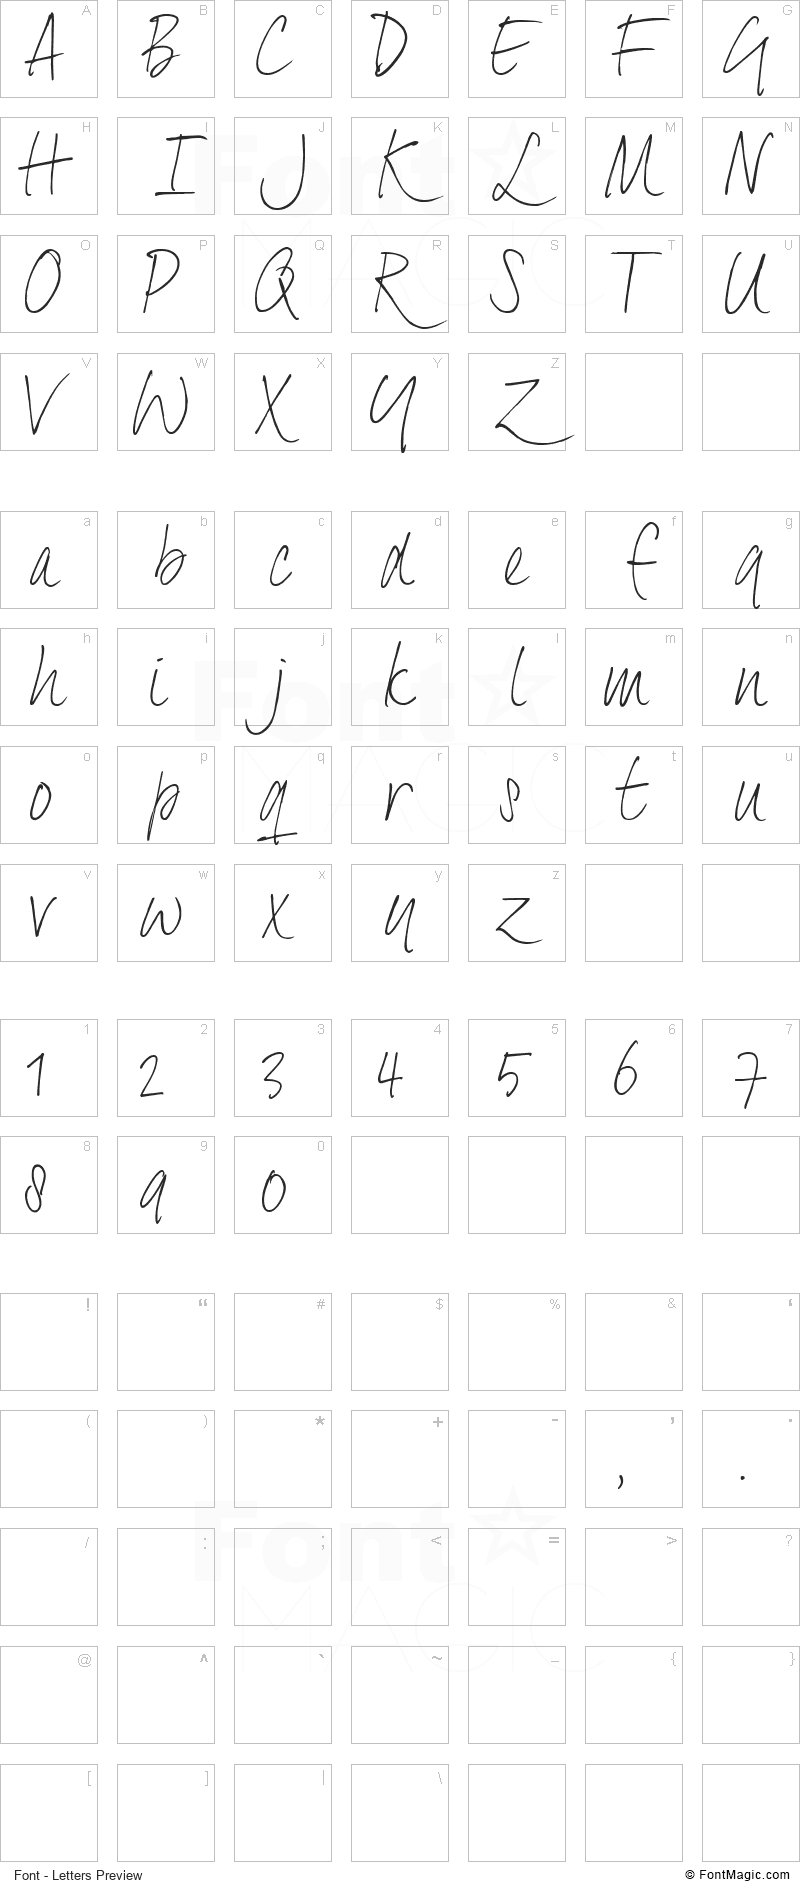 Dextera Font - All Latters Preview Chart